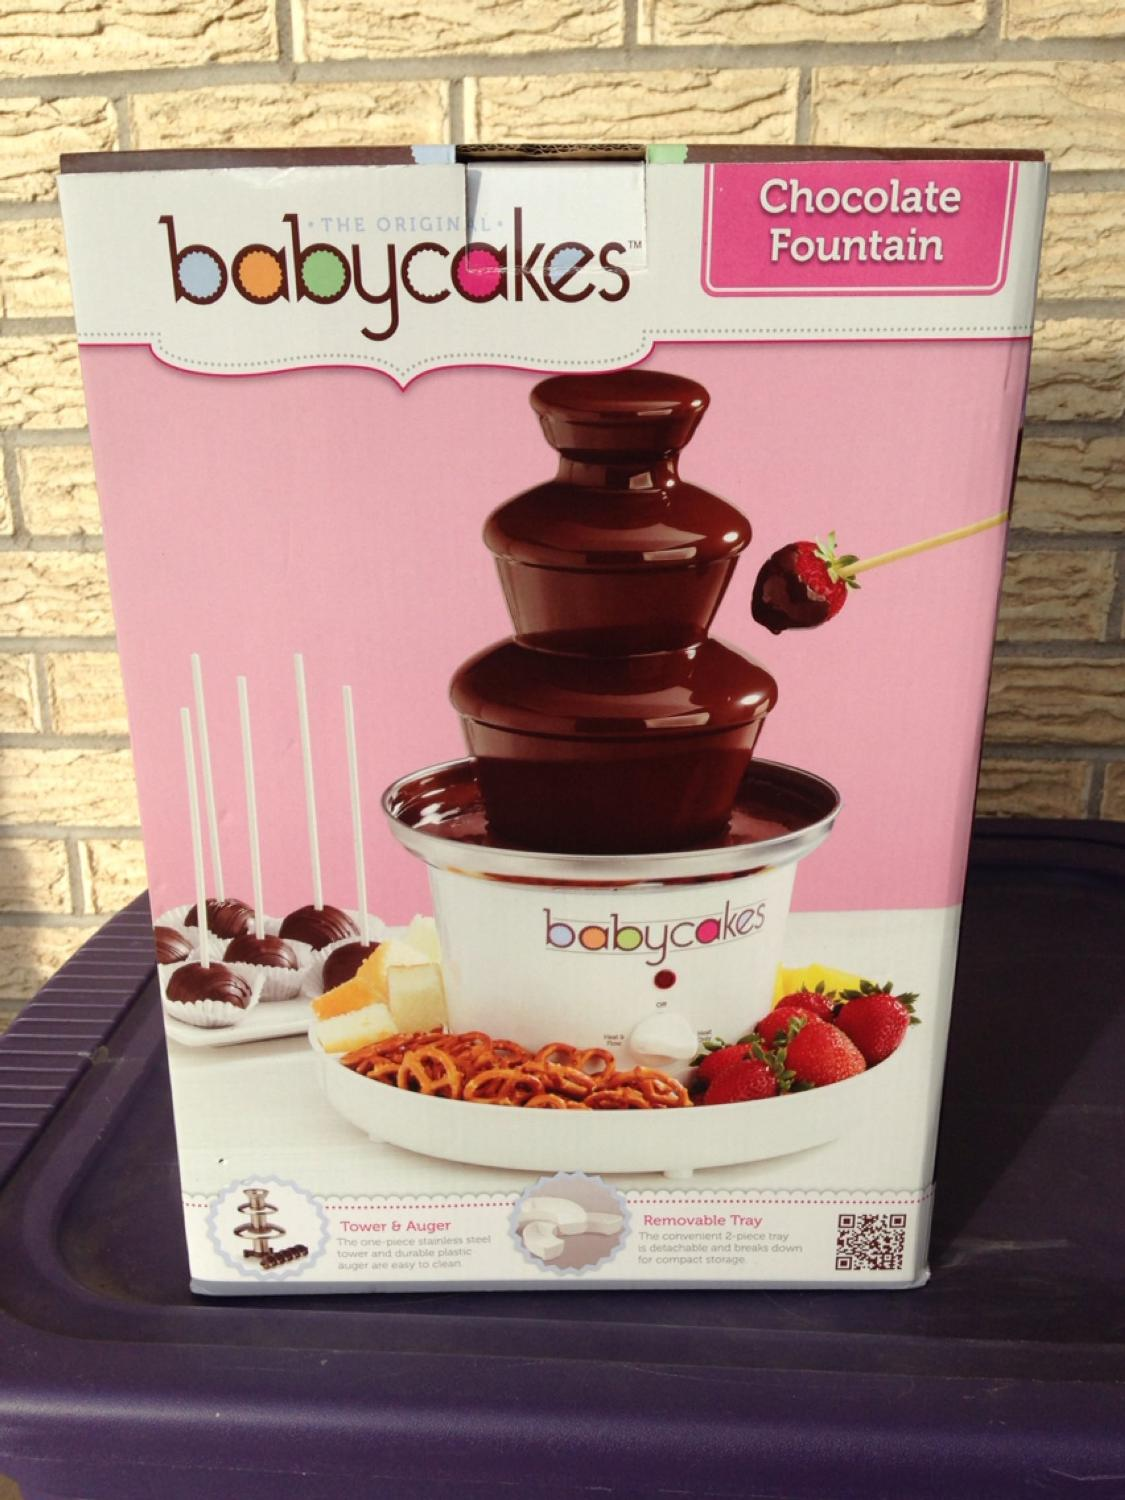 Find More Babycakes Chocolate Fountain Brand New For Sale At Up To